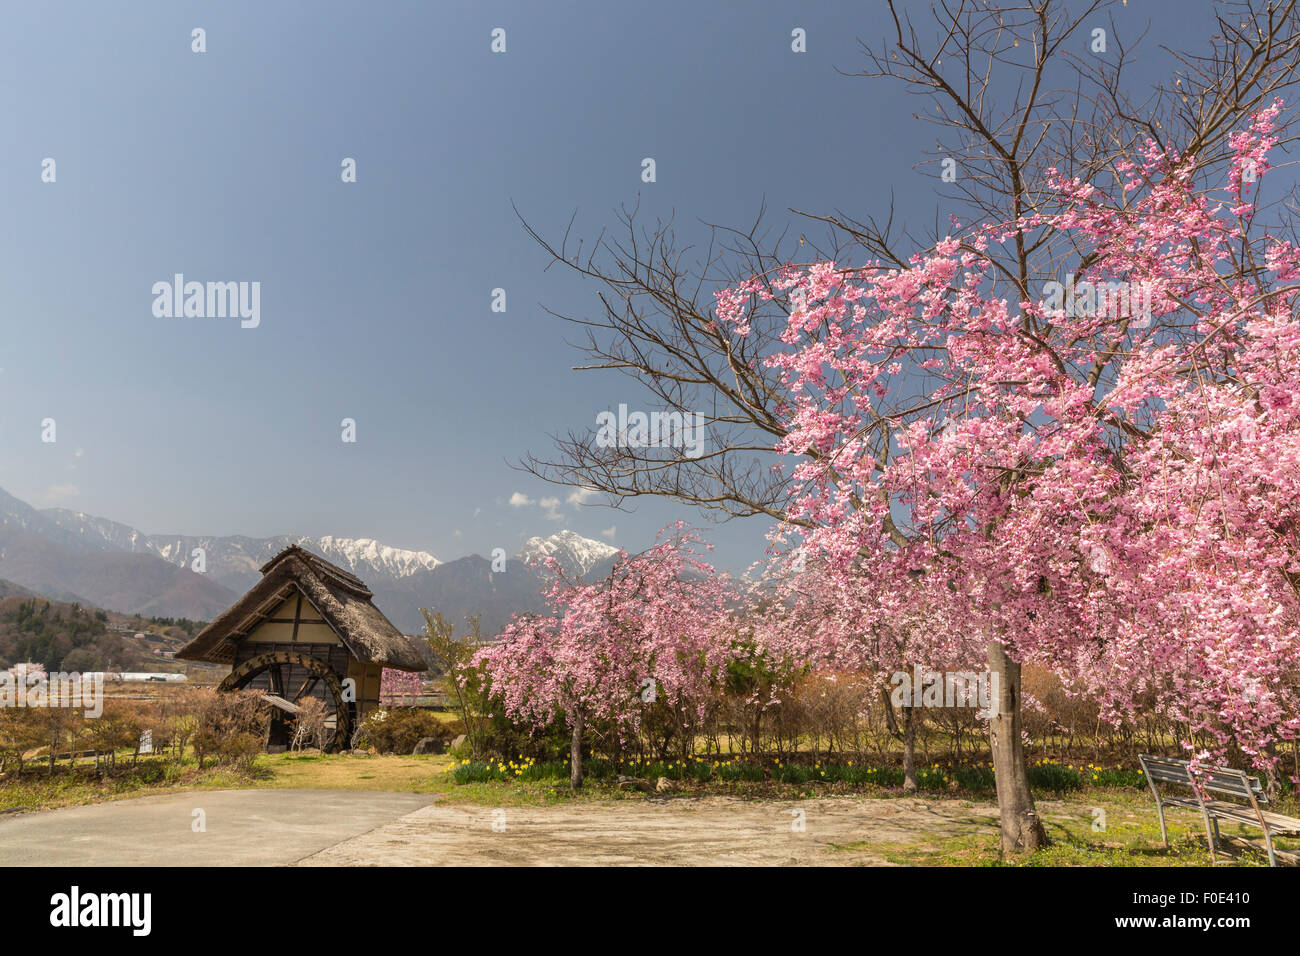 Cherry blossoms and water wheel house in Japan - Stock Image